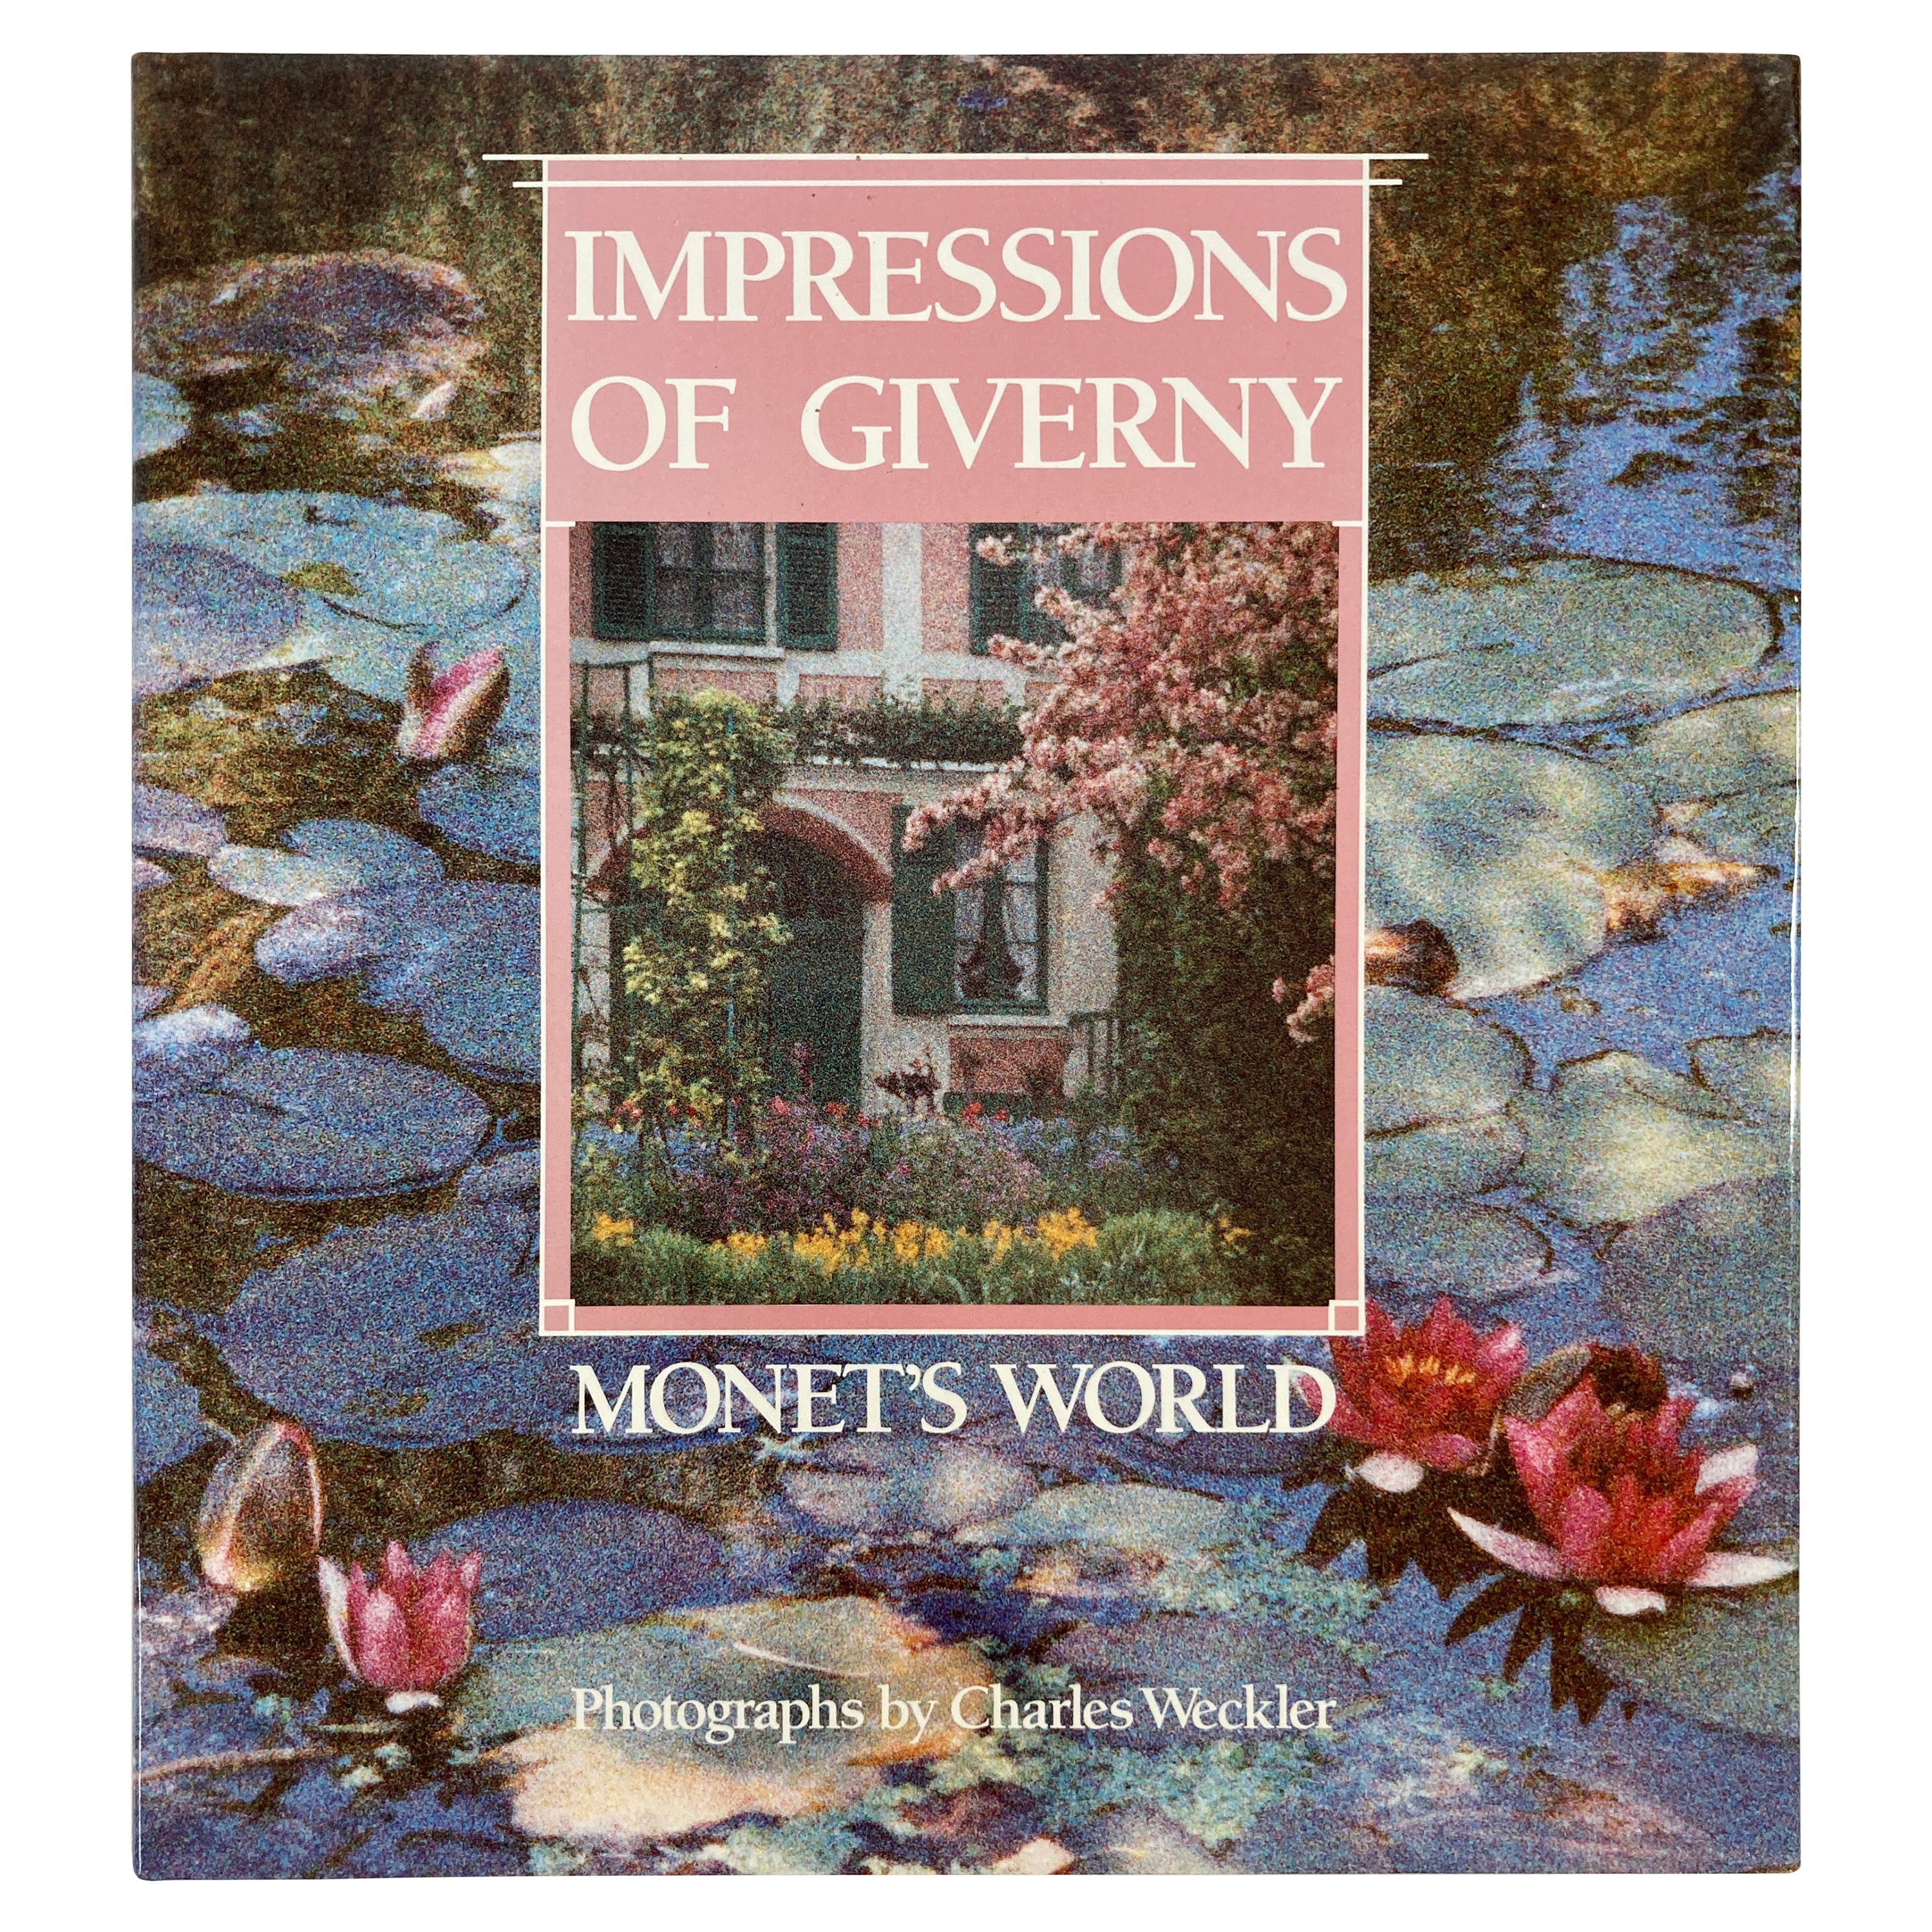 Impressions of Giverny Monet's World Charles Weckler Hardcover Book